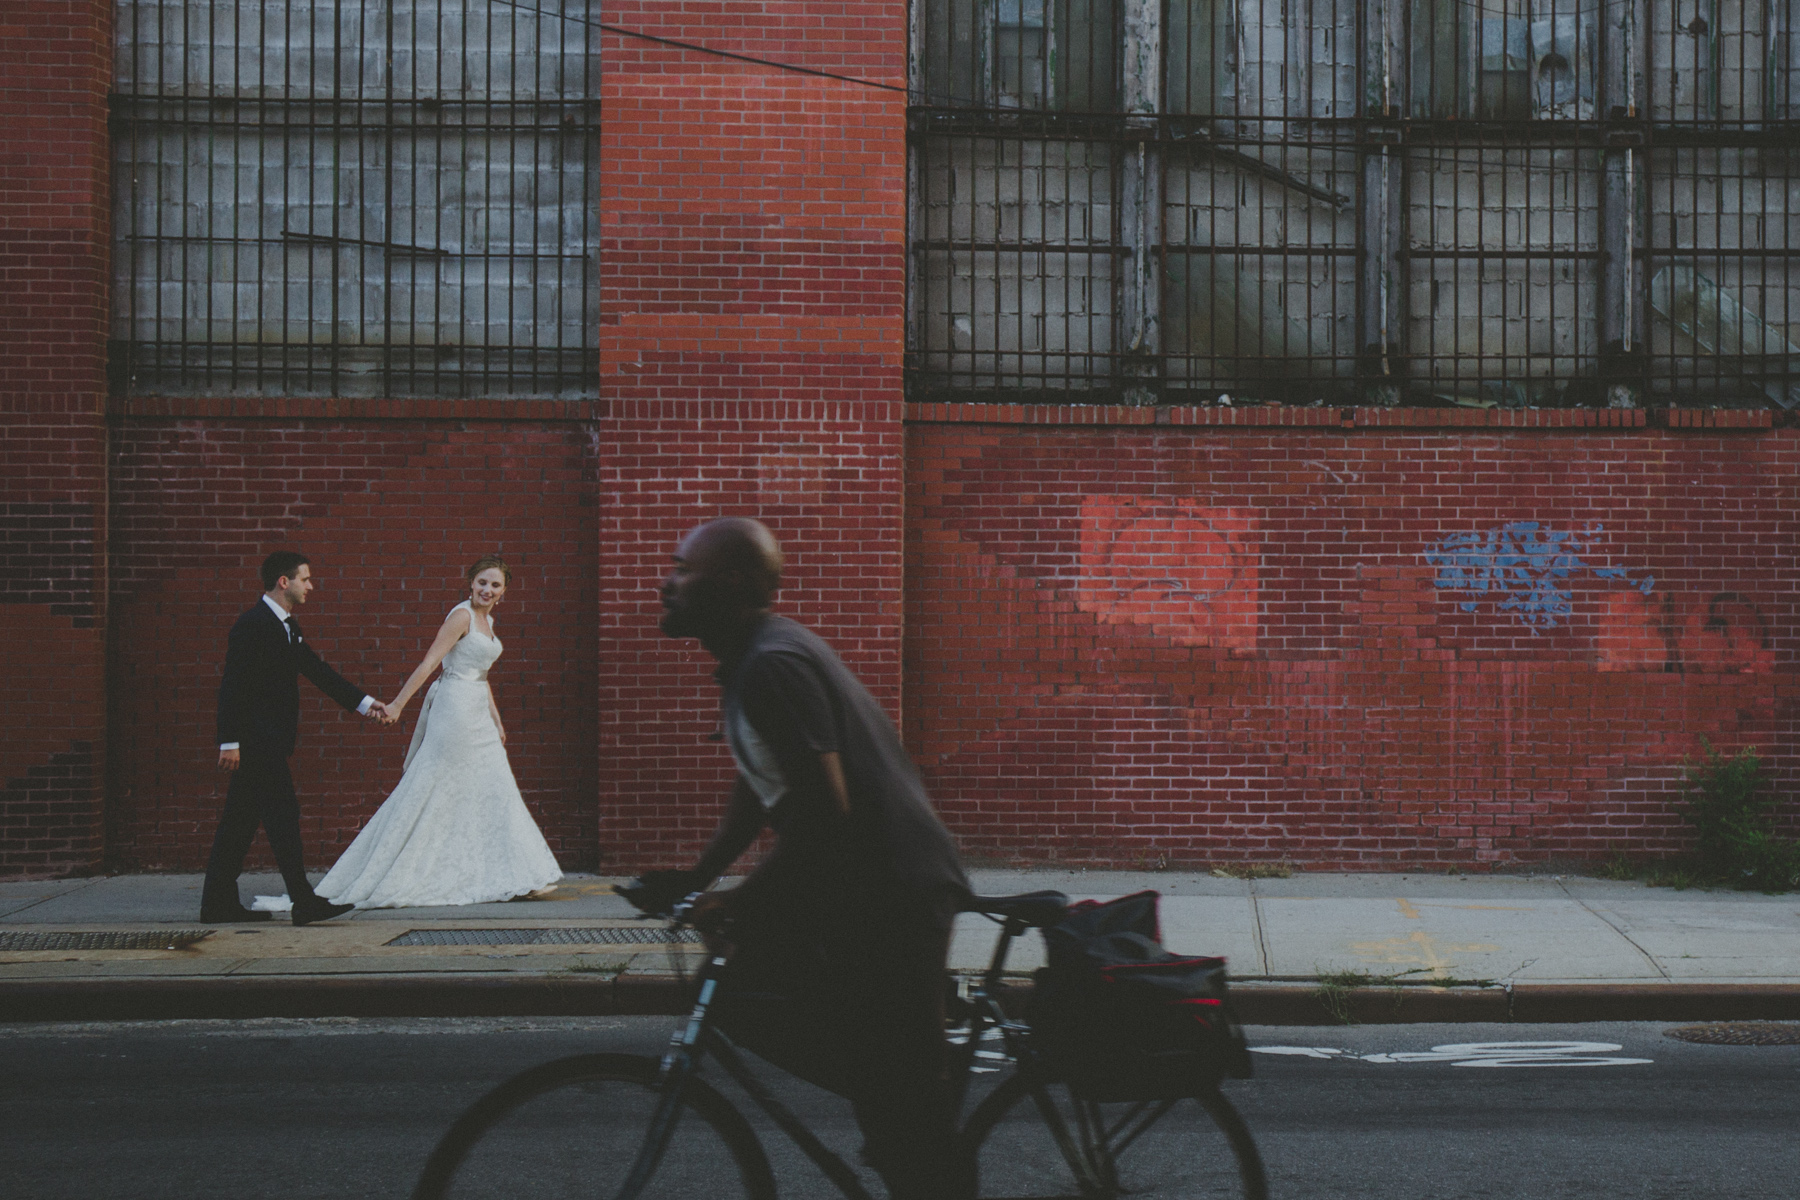 New York wedding photographer Martina Zancan